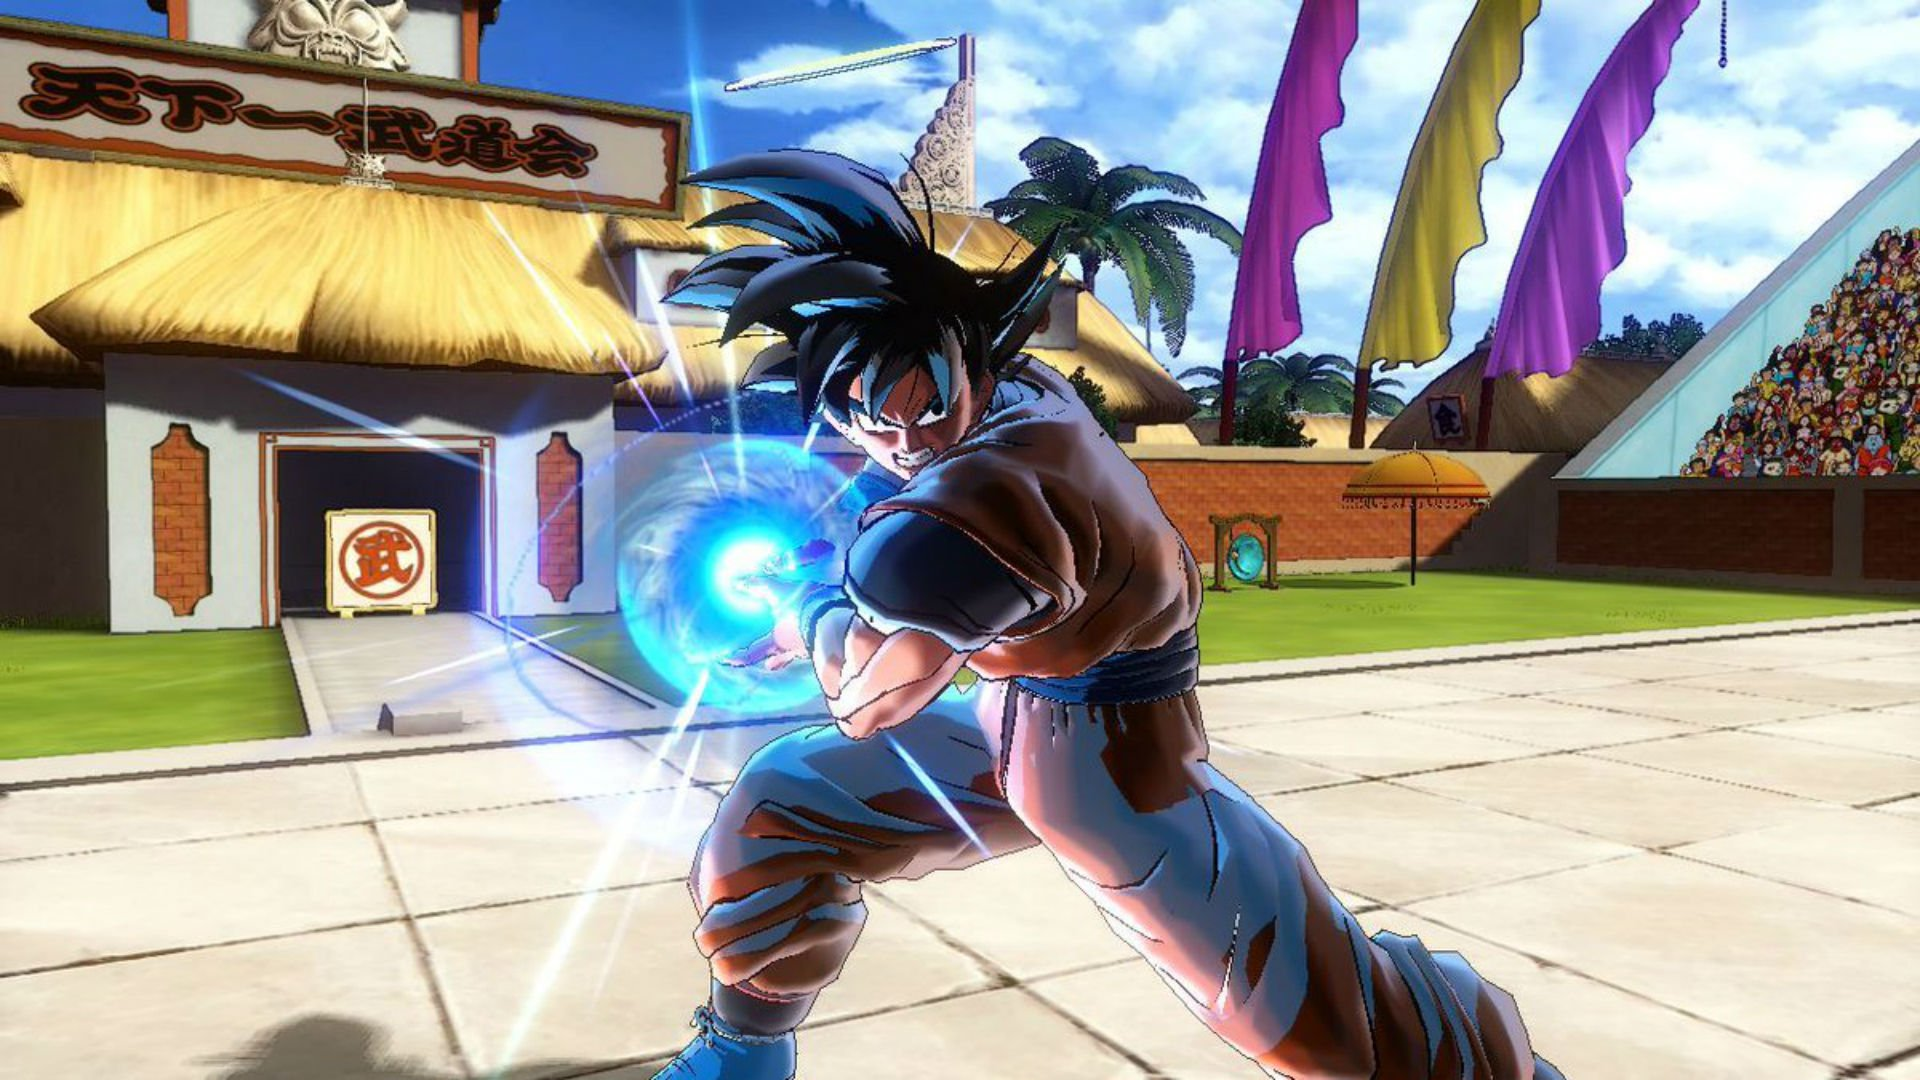 Dragon Ball Xenoverse Series Has Sold Over 10 Million Units Worldwide